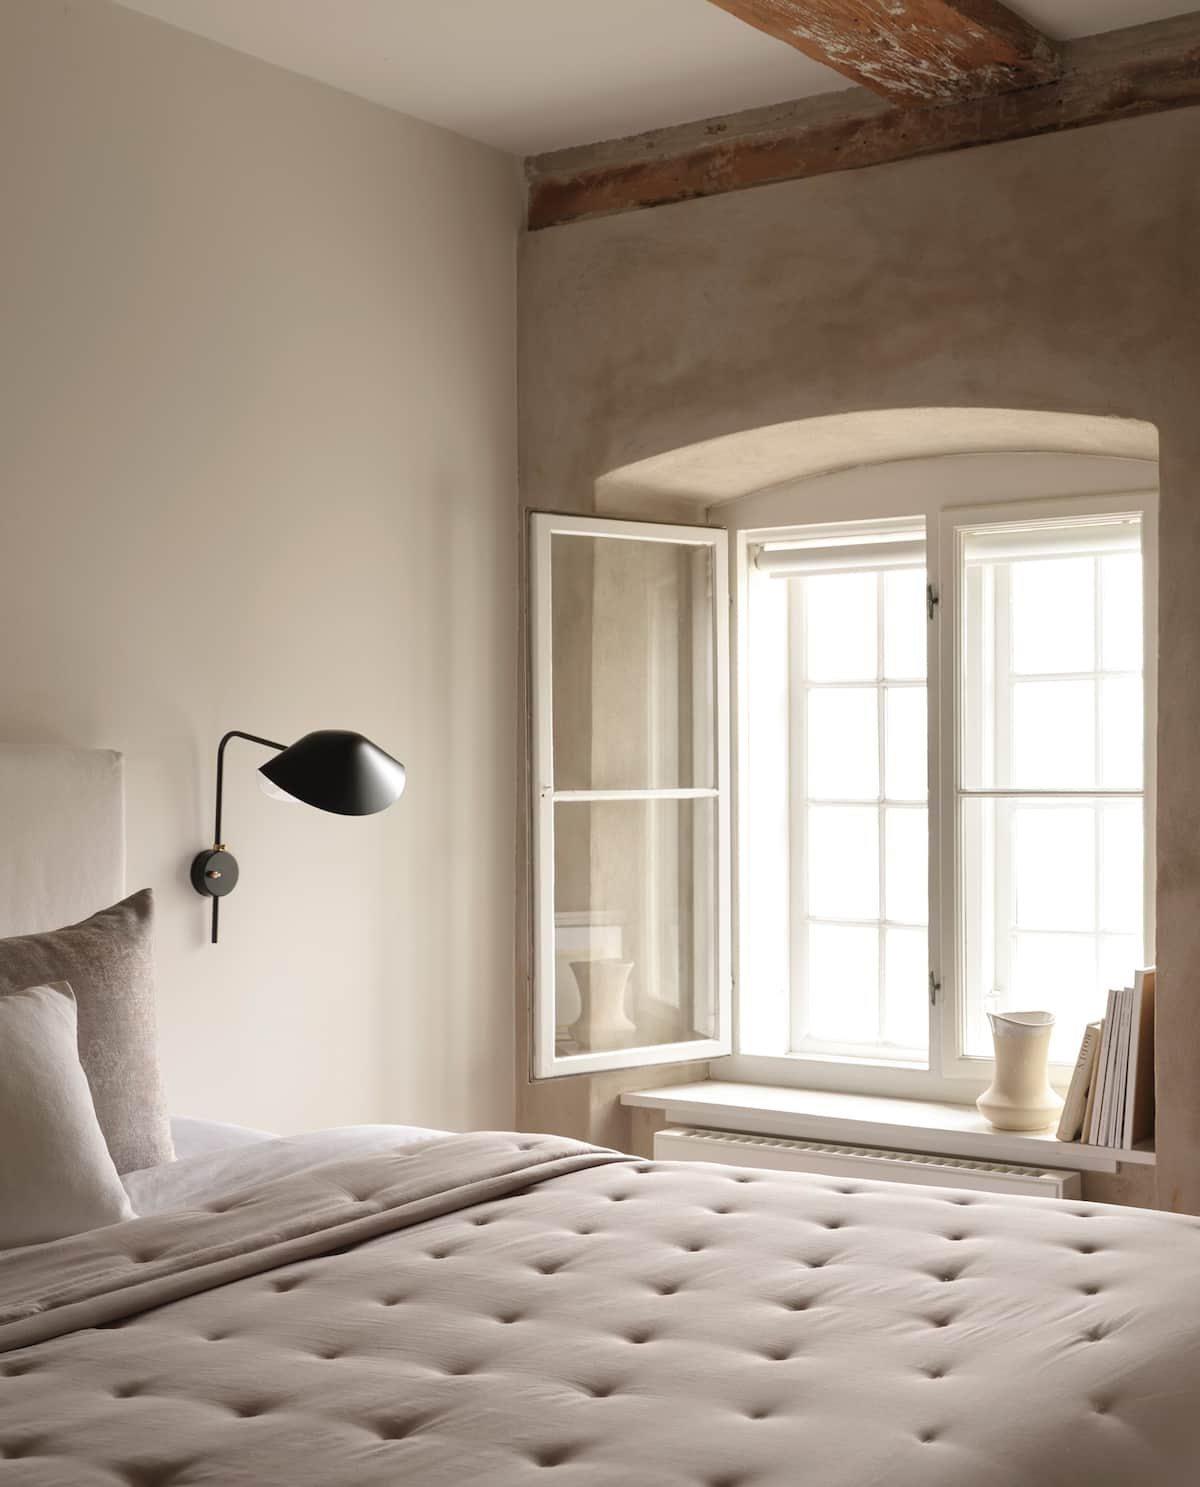 shop-the-look by zara-home